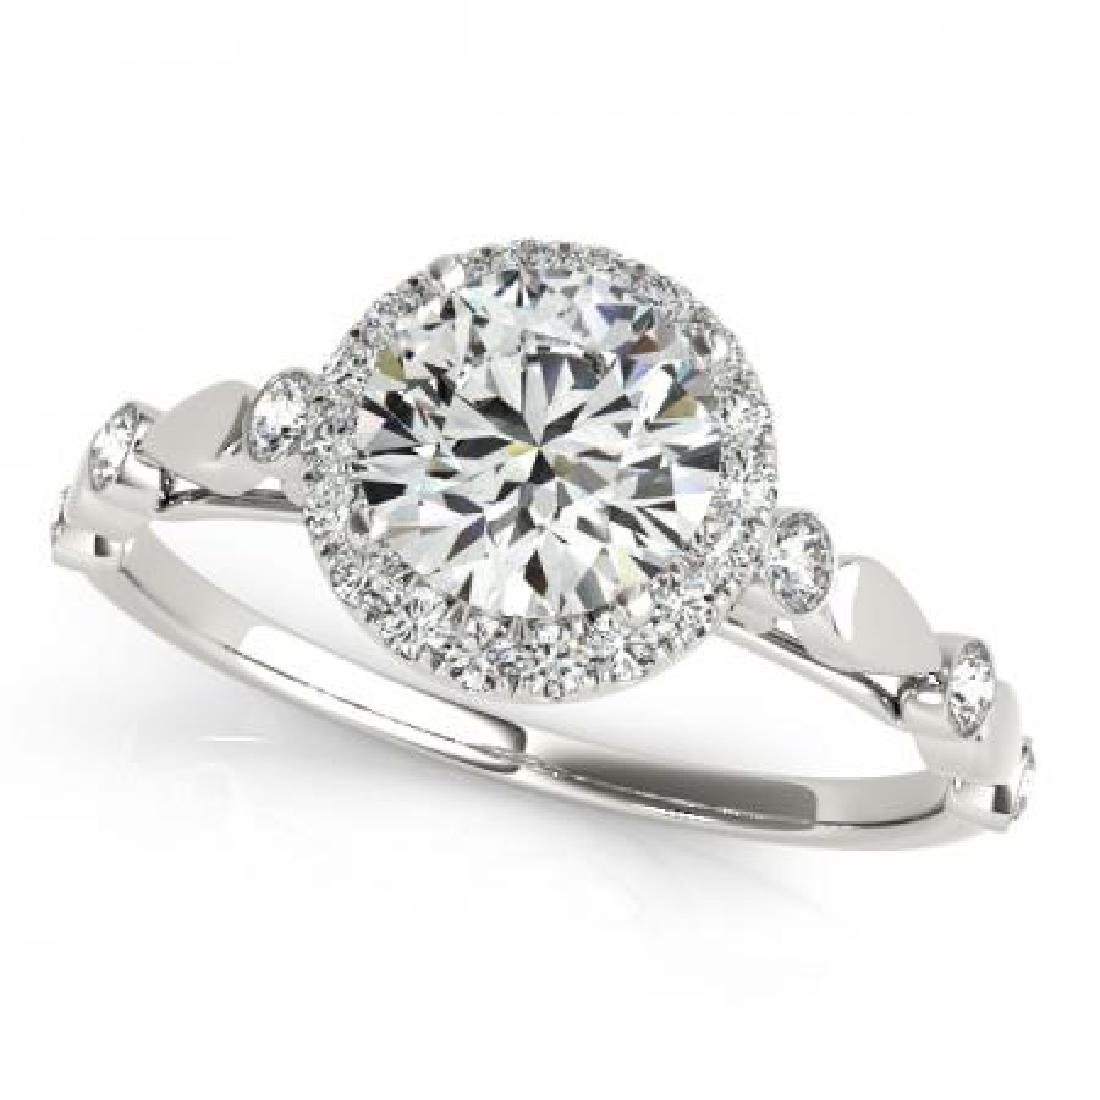 CERTIFIED PLATINUM 1.56 CT G-H/VS-SI1 DIAMOND HALO ENGA